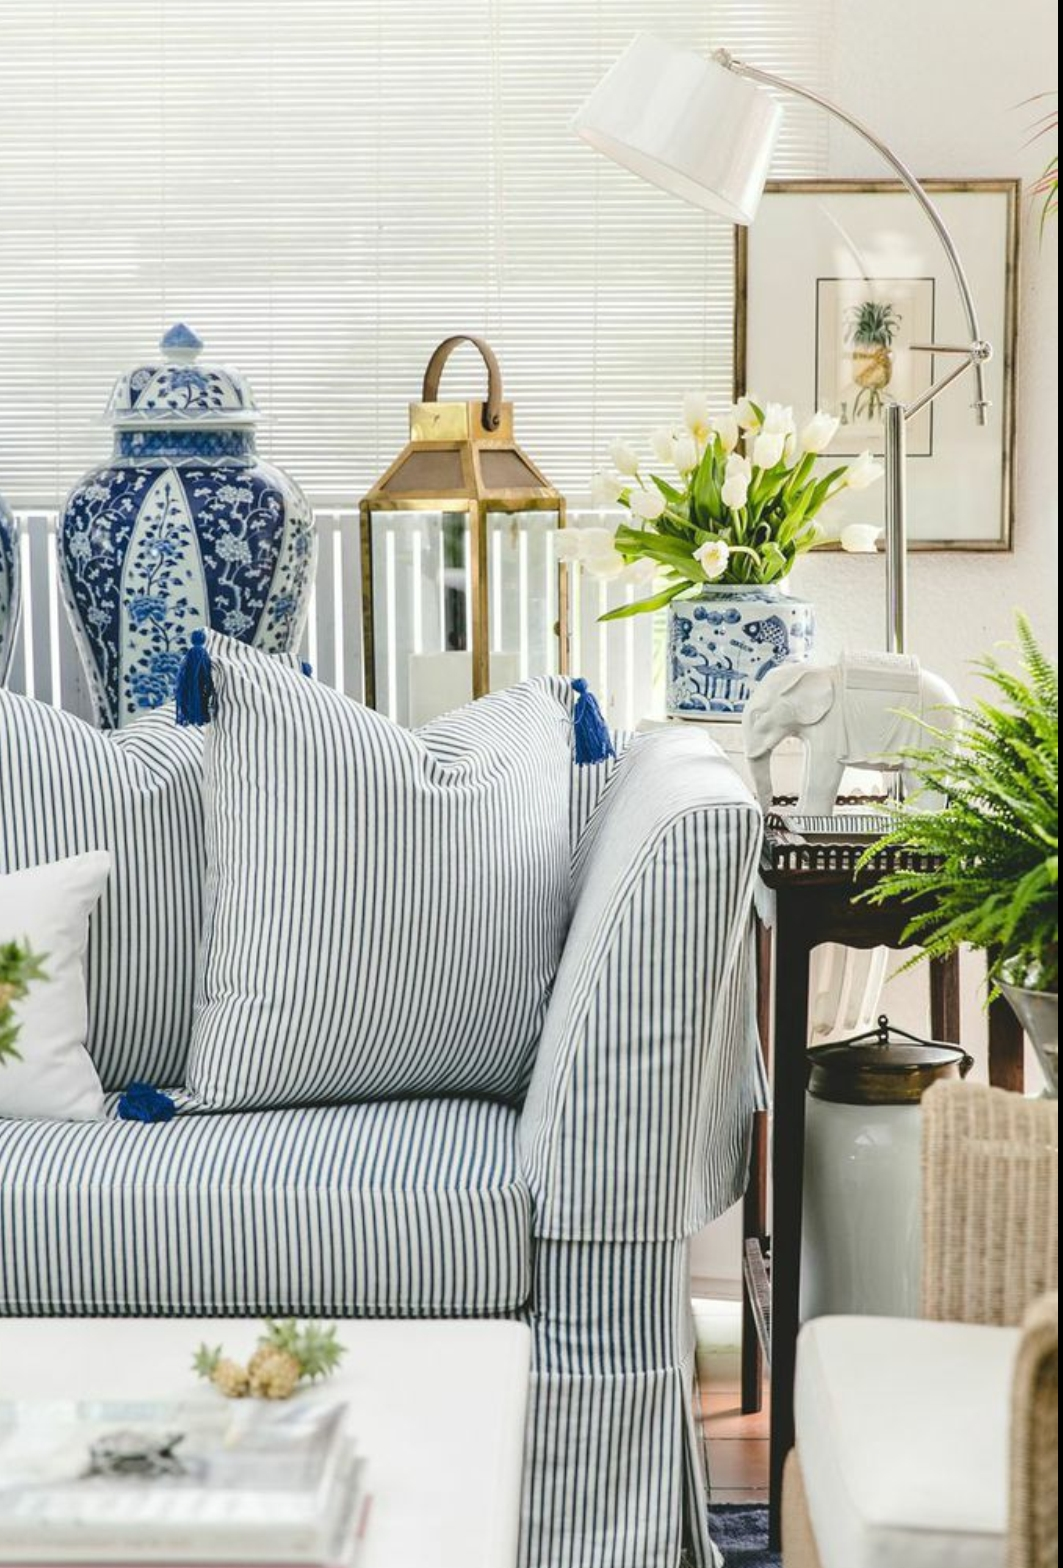 Sofa Ideas: Blue and White Striped Sofas (Explore #8 of 20 Photos)